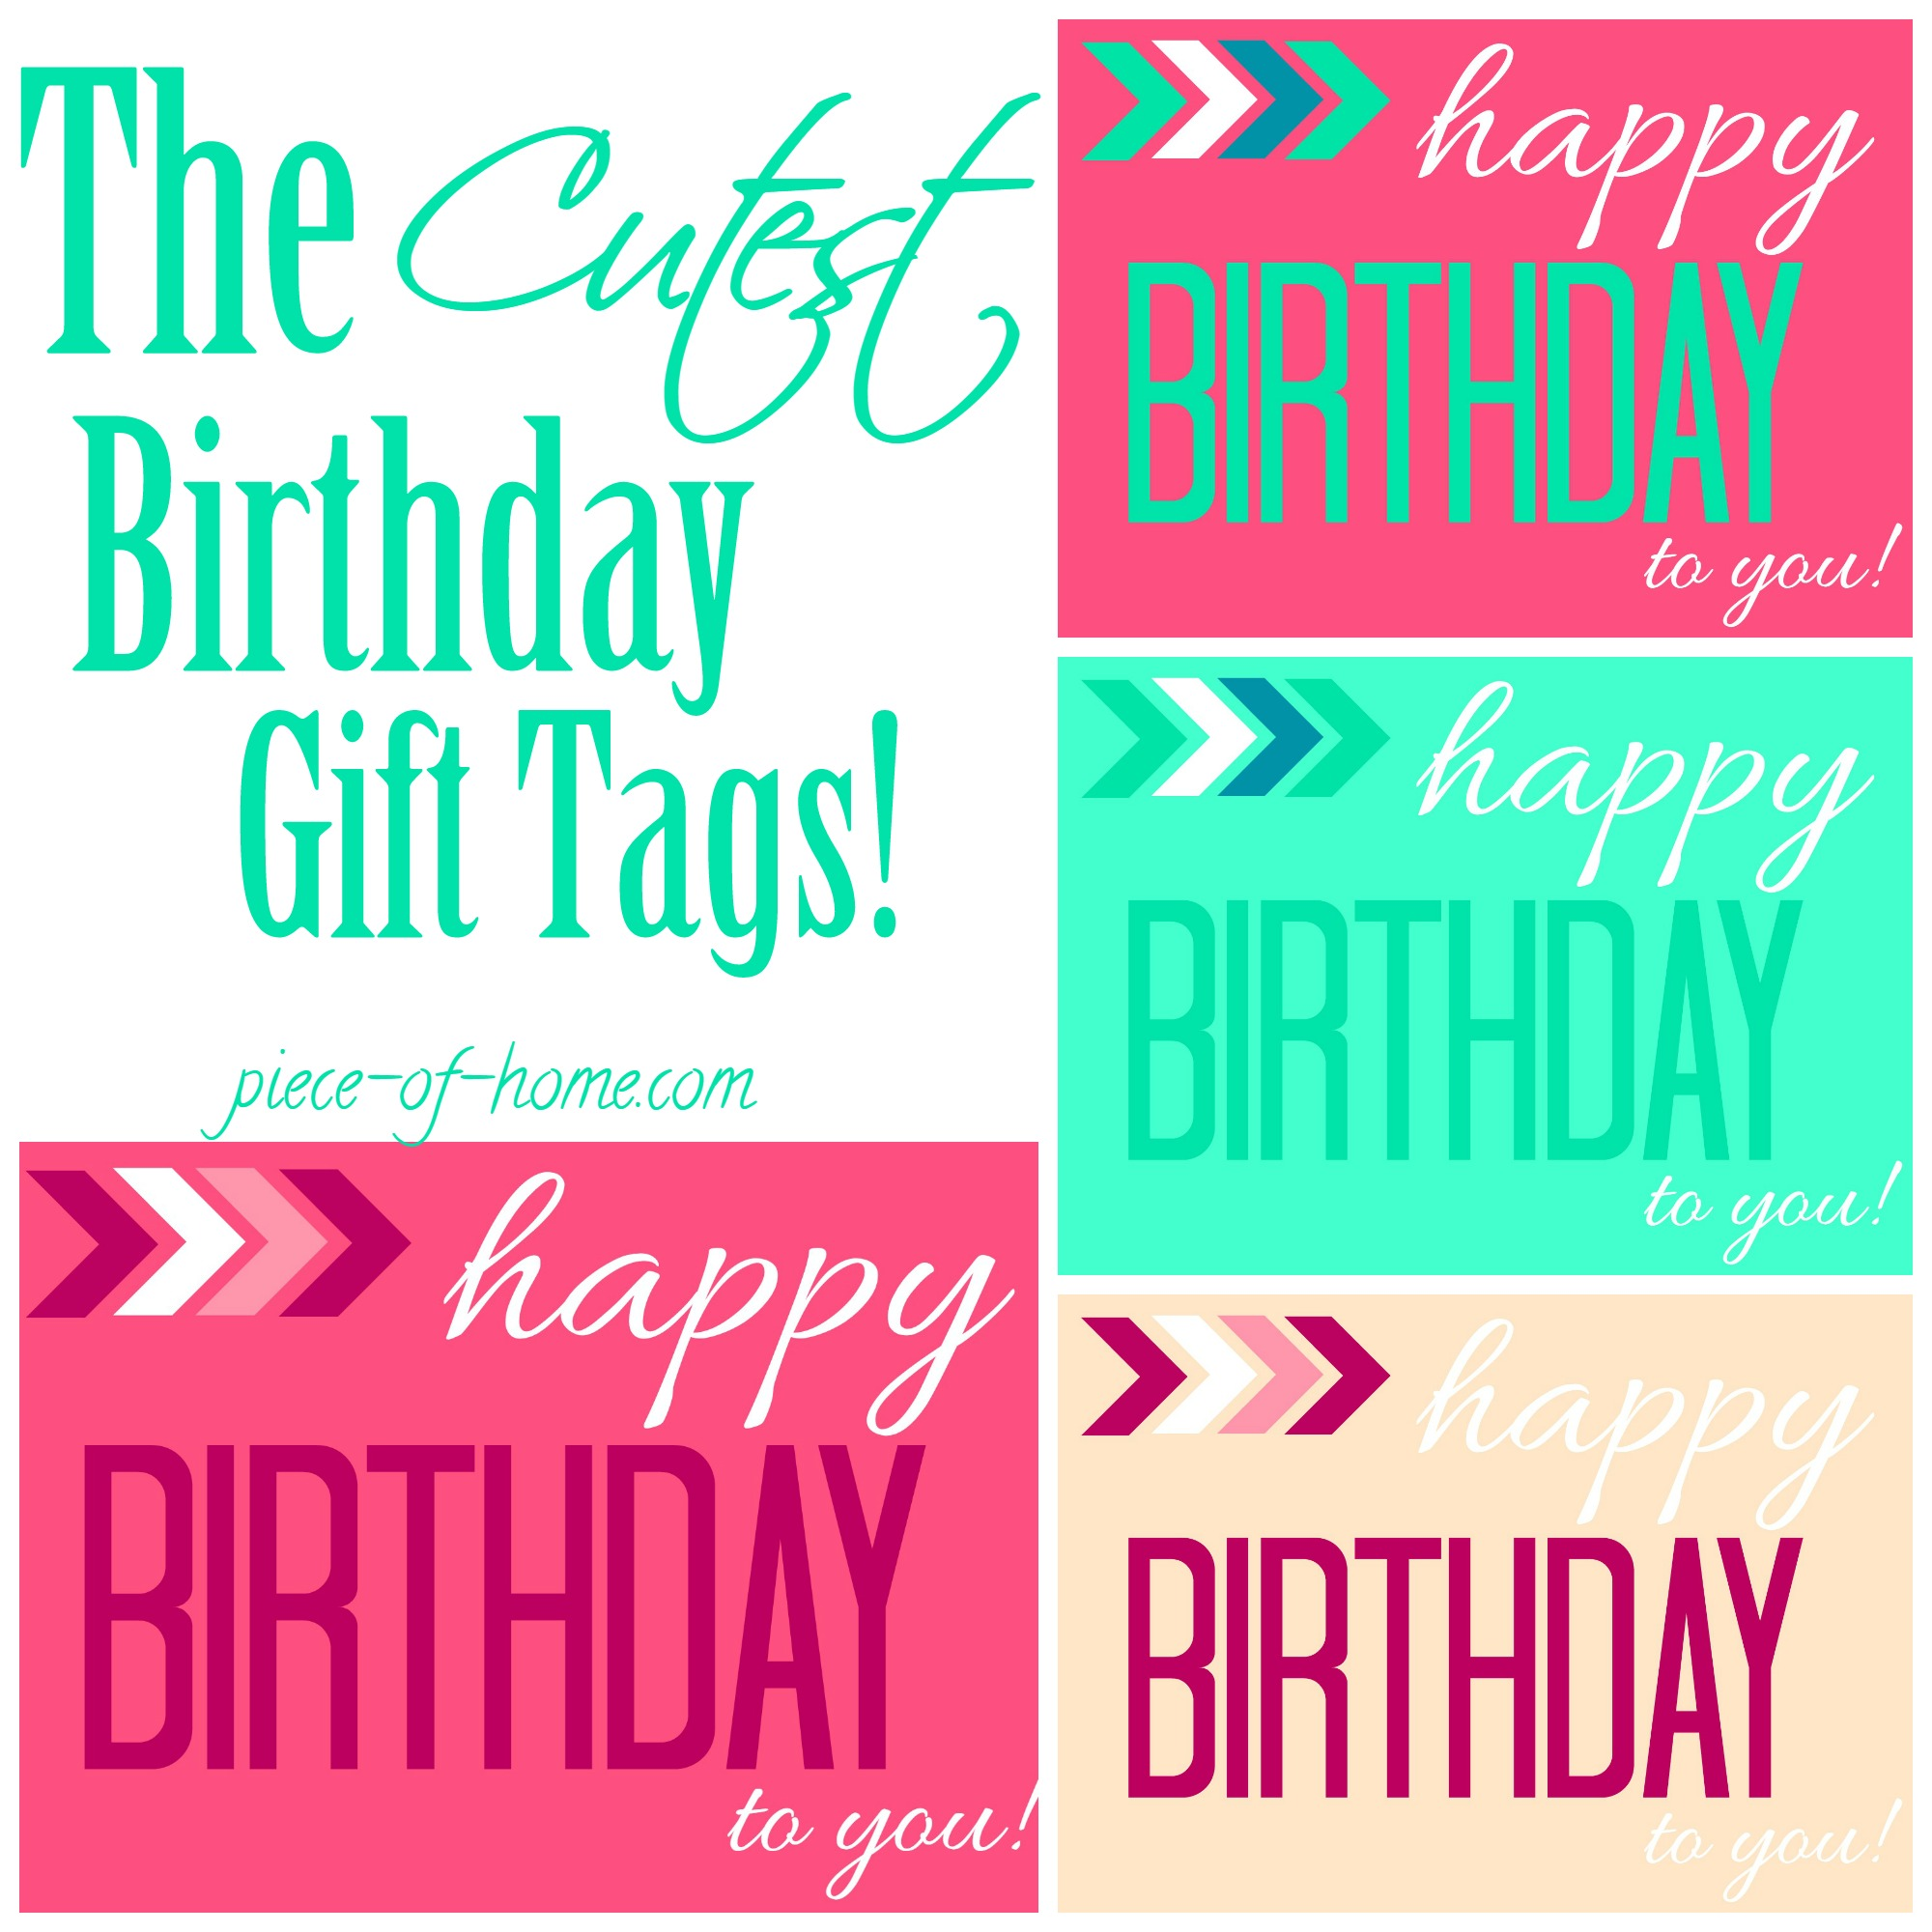 birthday gift tag printables ; The-Cutest-Birthday-Gift-Tags